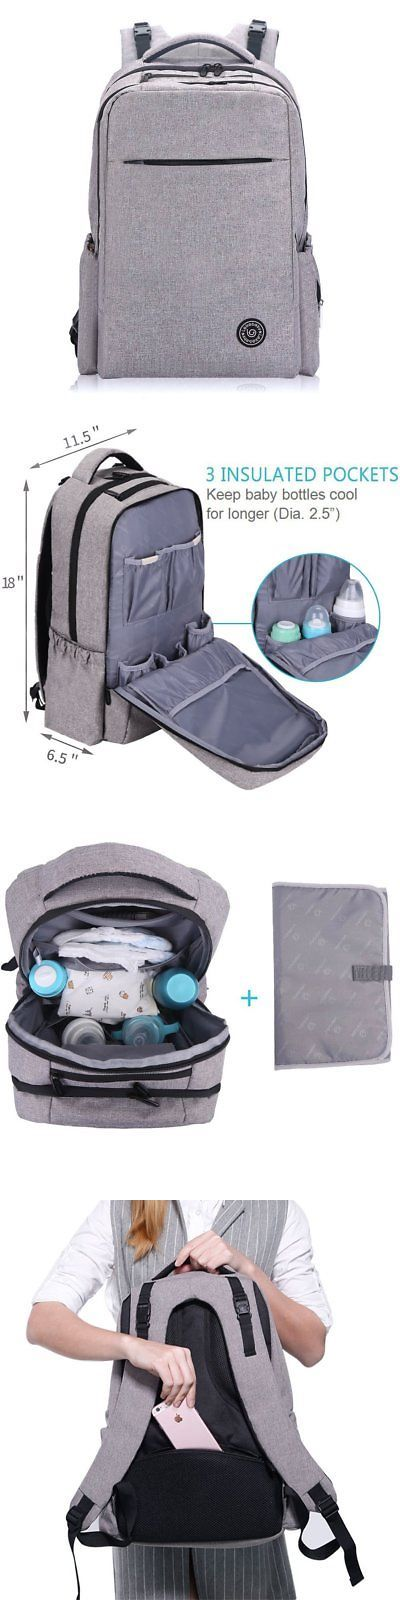 baby kid stuff: Lekebaby Large Diaper Bag Backpack With Stroller Straps For Mom And Dad In Grey -> BUY IT NOW ONLY: $44.82 on eBay!